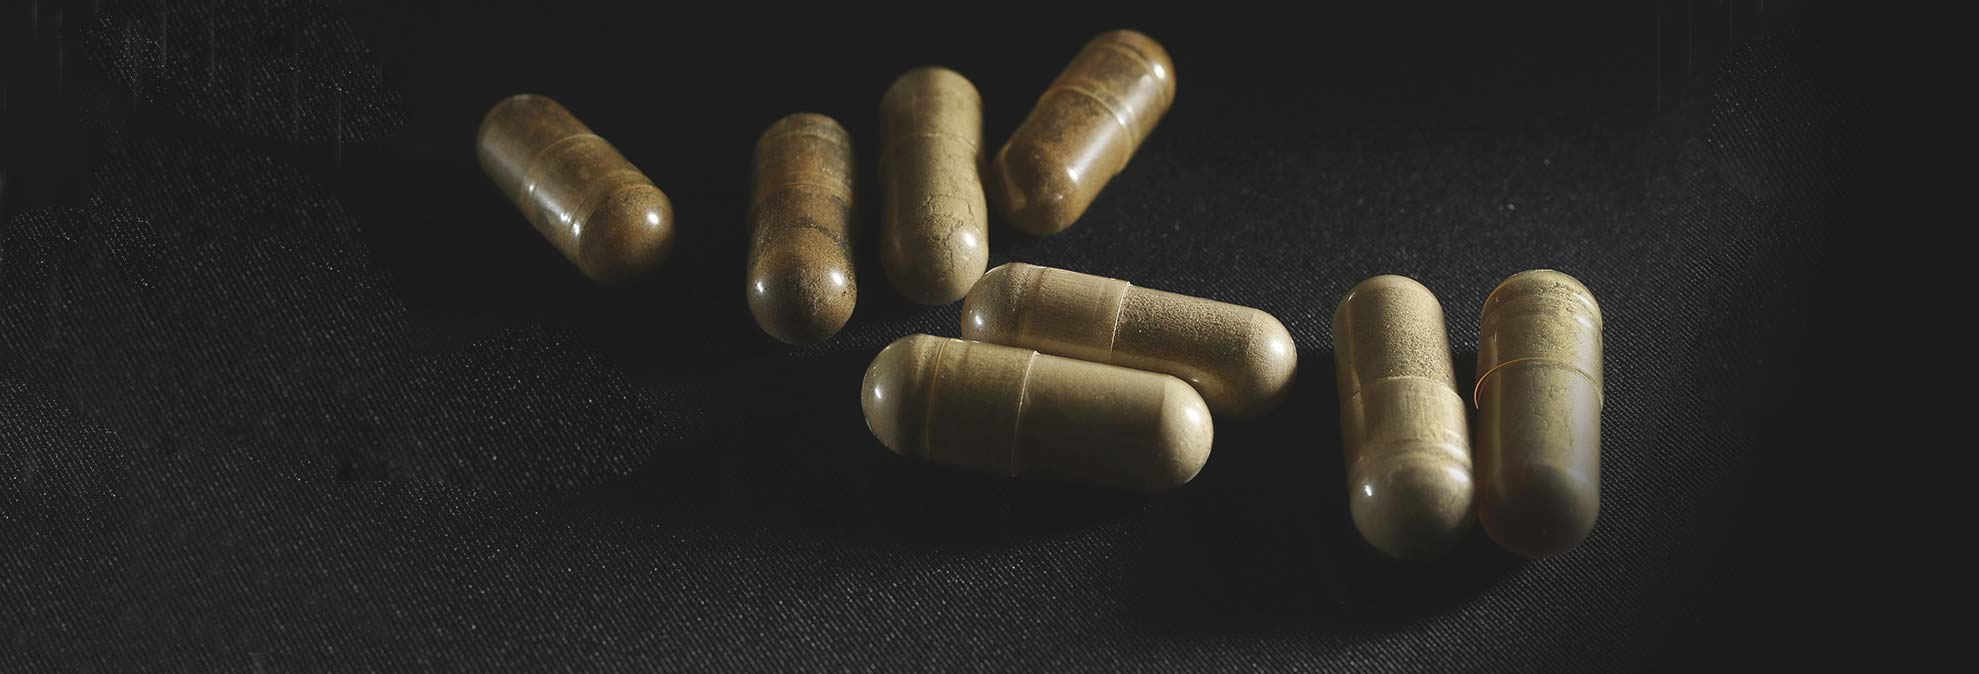 The Dangers of Taking Kratom - Consumer Reports